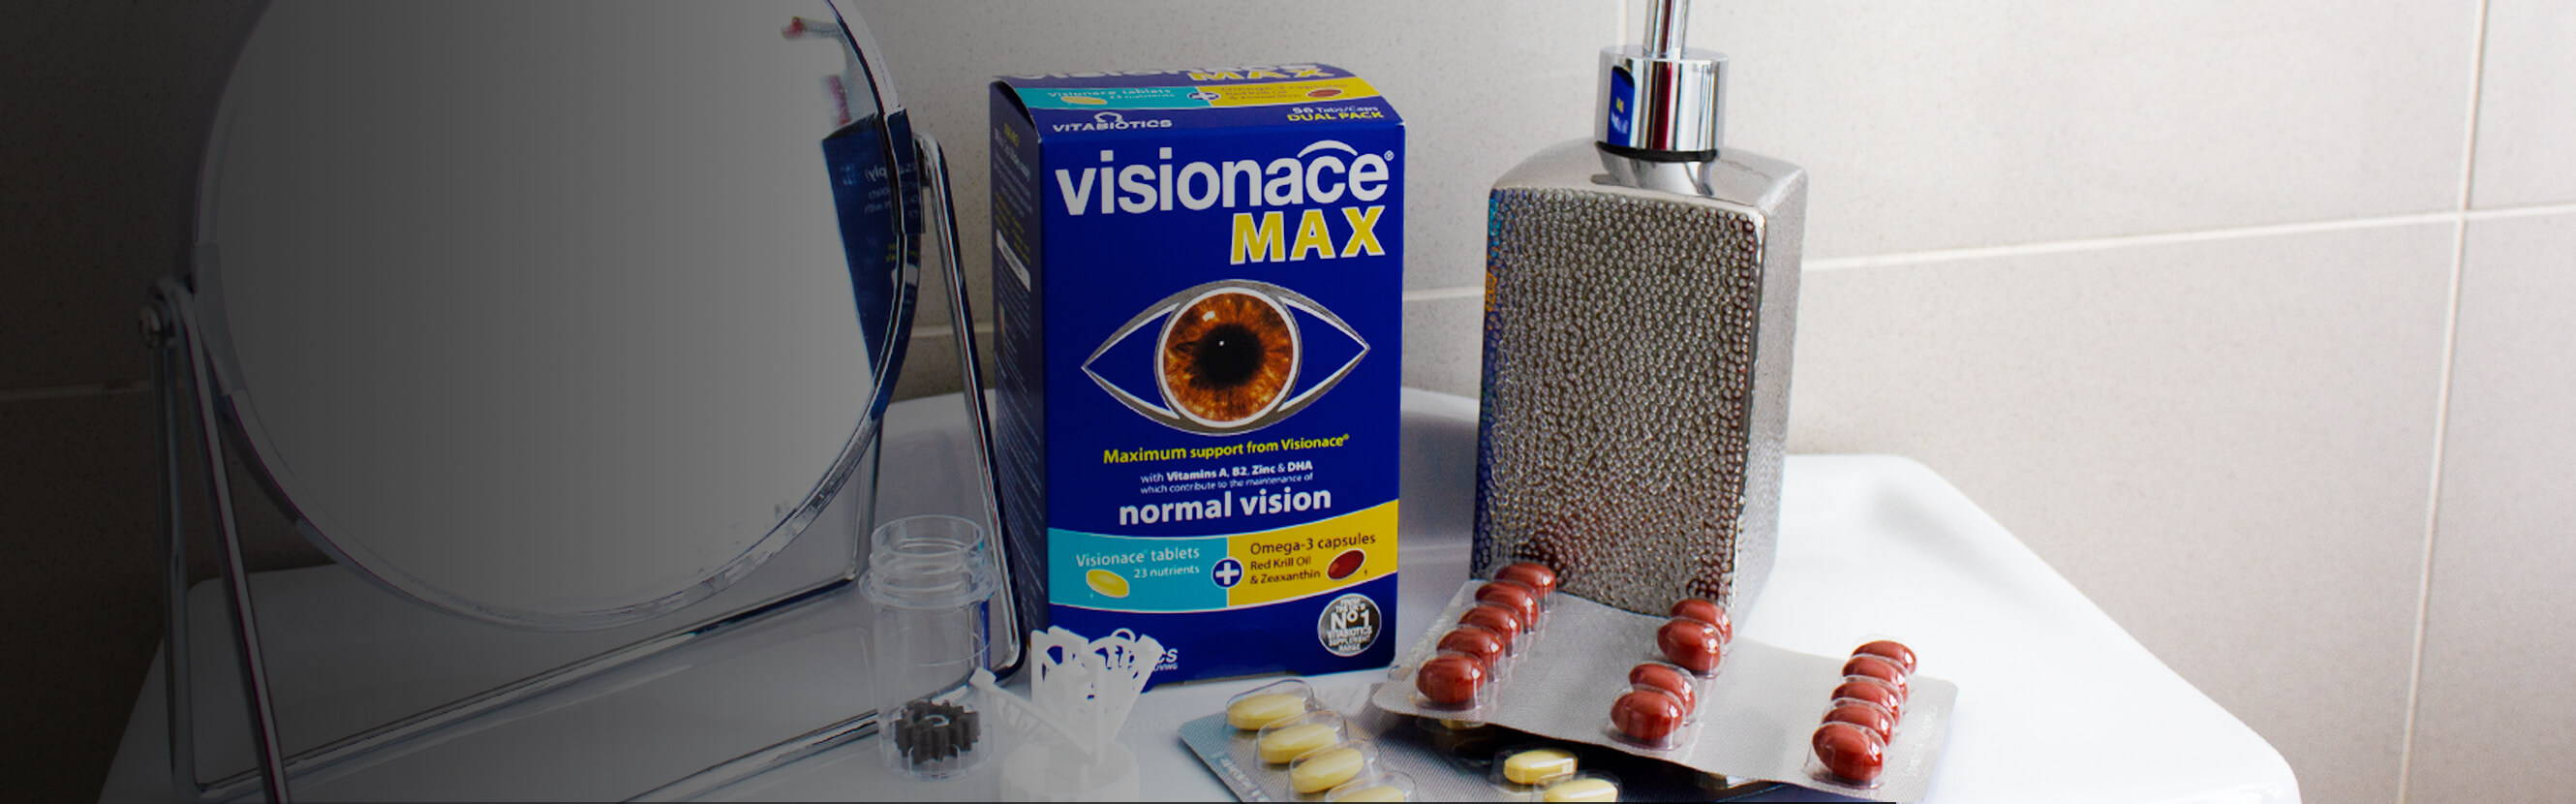 When it comes to healthy vision, you need to keep an eye on your nutrition. And with Visionace Max, you can get our most comprehensive support – multinutrient tablets, high-quality Omega-3 capsules with additional Lutein Esters and Zeaxanthin.